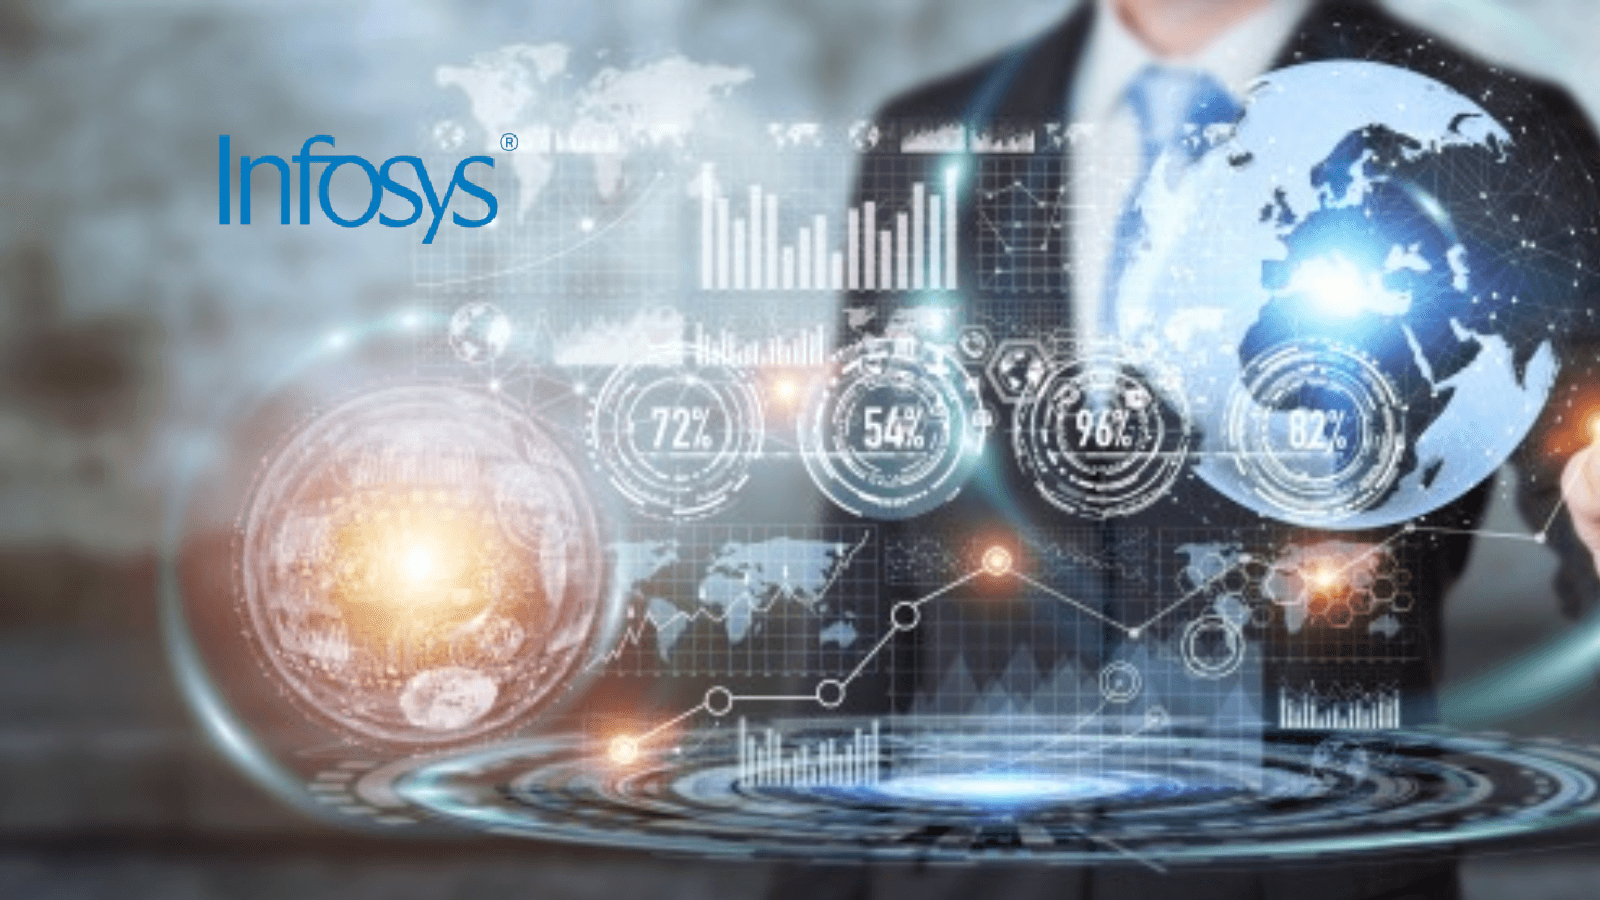 Infosys launches AI-driven solution to automate helpdesk operations